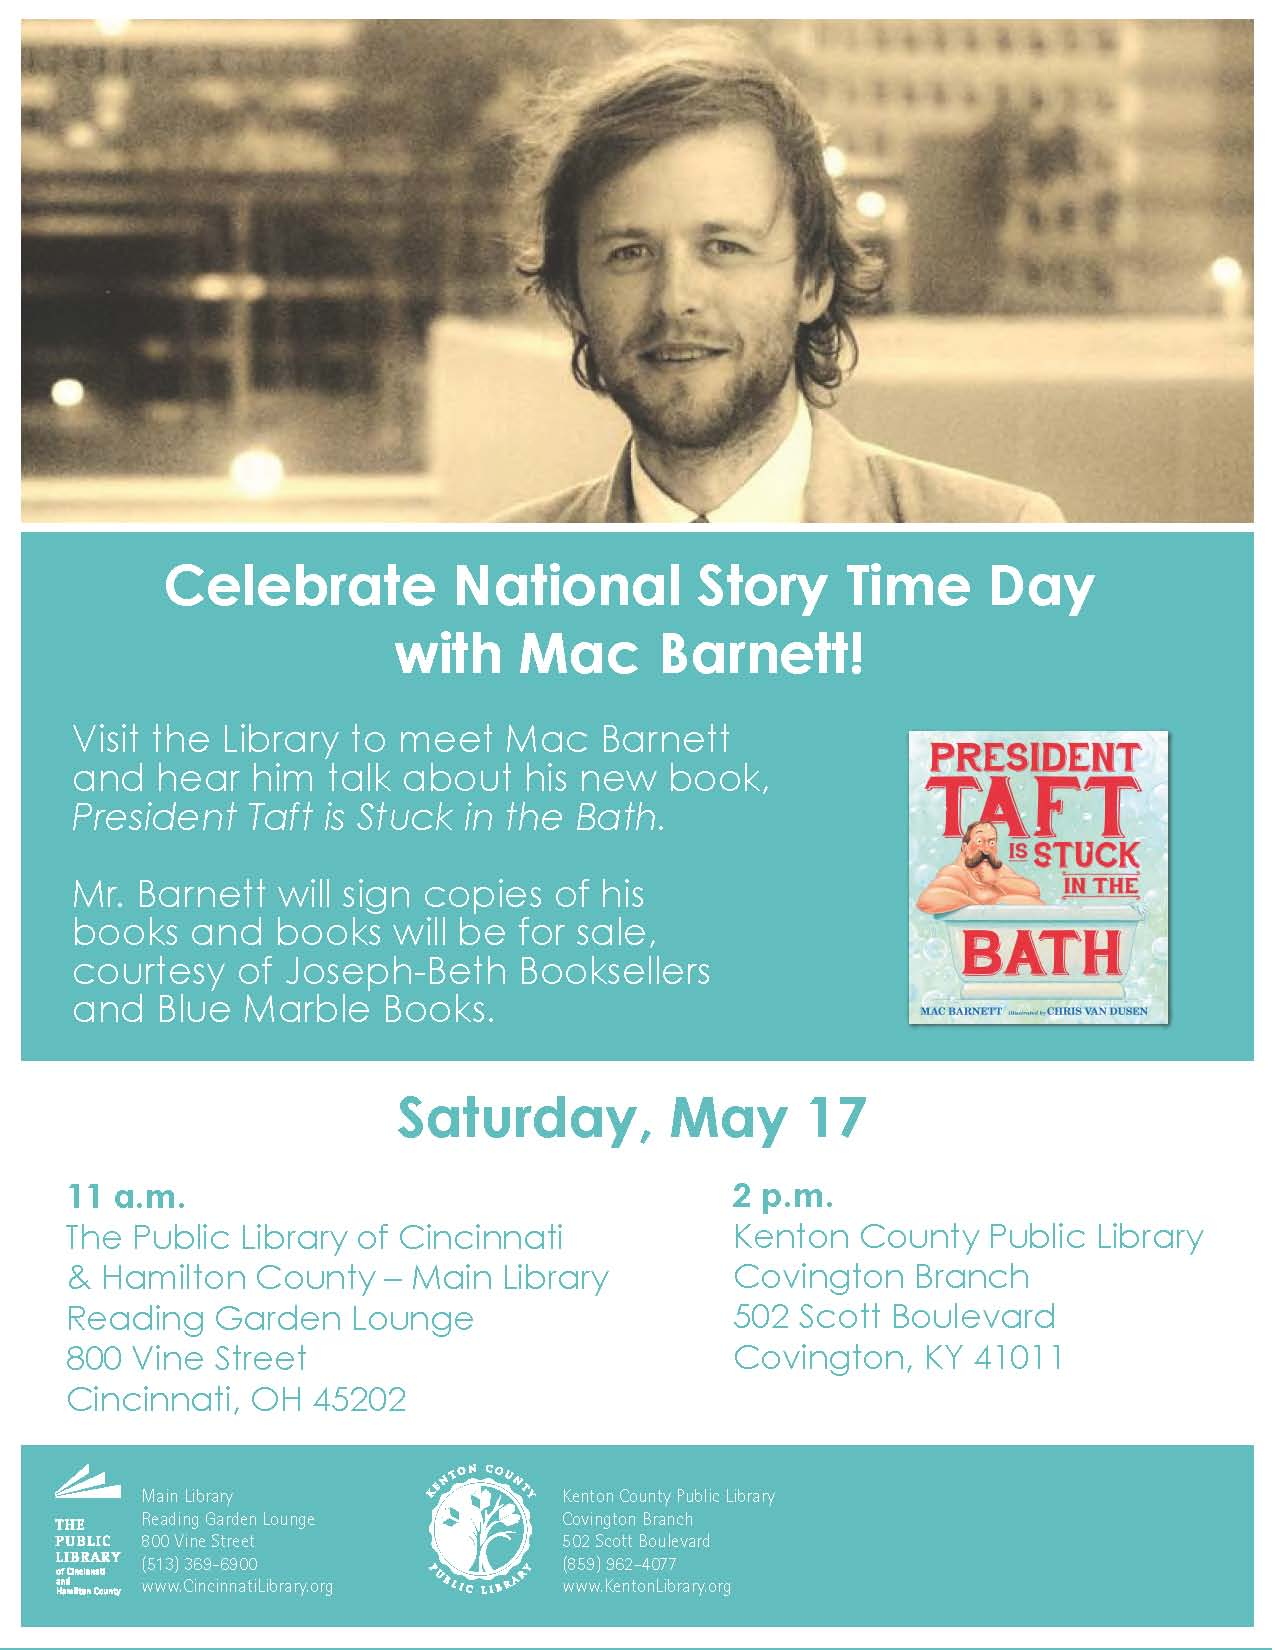 National Story Time Day Celebration w/ Author Mac Barnett